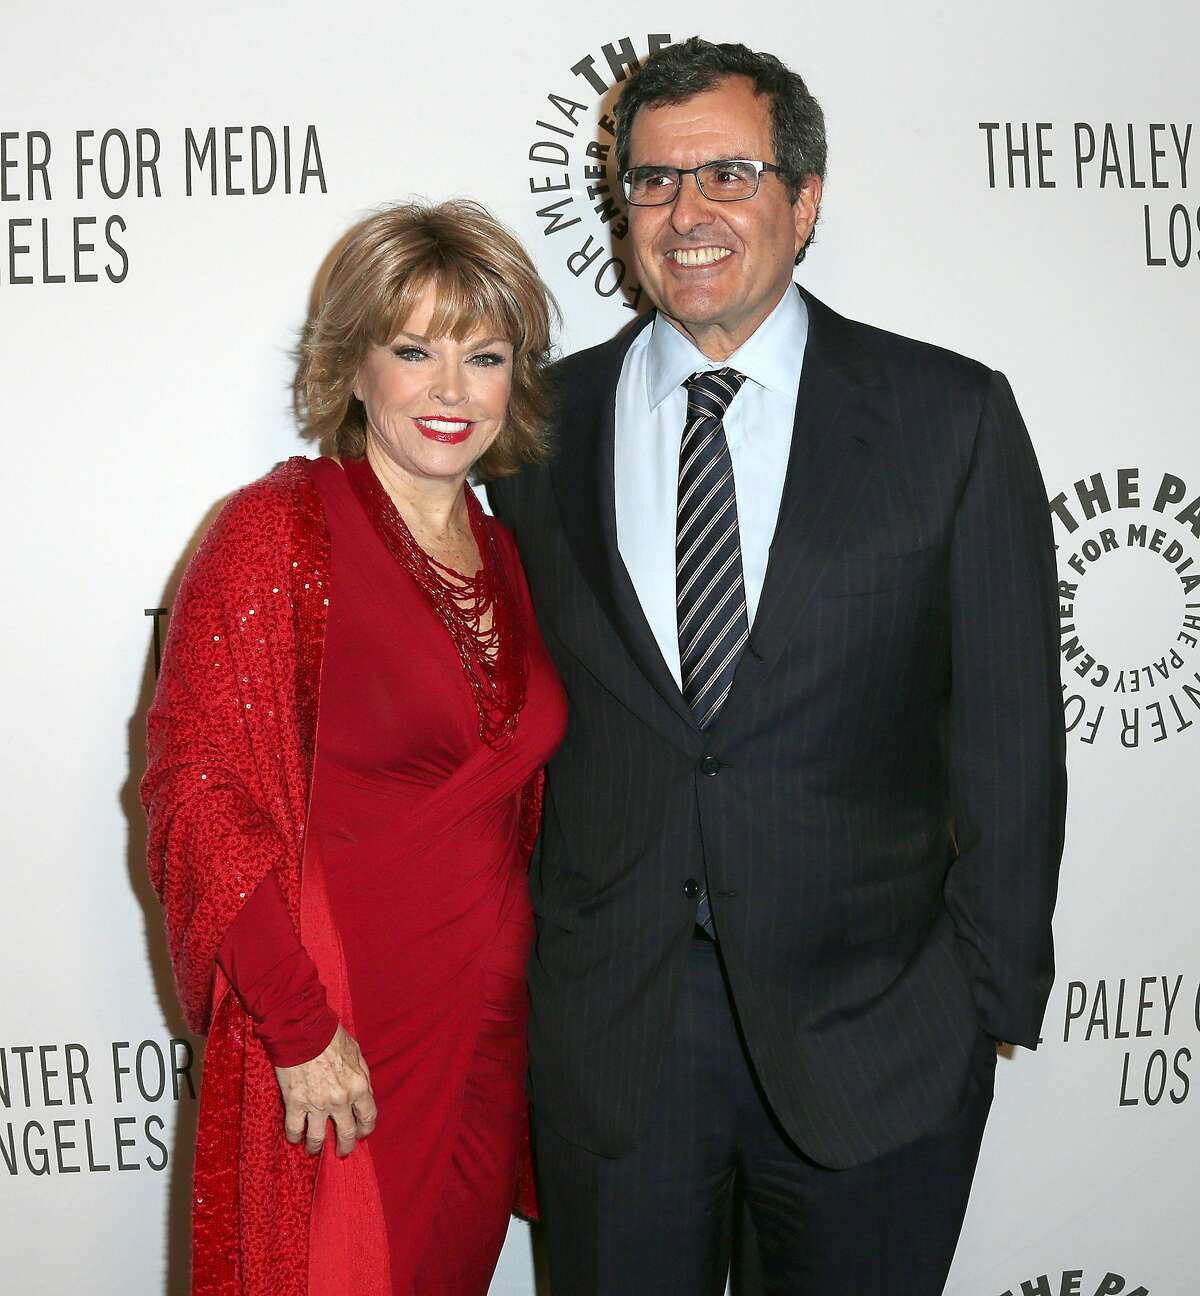 WEST HOLLYWOOD, CA - OCTOBER 22: Pat Mithcell, (L) President/CEO, The Paley Center for Media, and Peter Chernin, Chairman/CEO, The Chernin Group attend The Paley Center for Media's Annual Los Angeles Benefit at The Rooftop Of The Lot on October 22, 2012 in West Hollywood, California. (Photo by Frederick M. Brown/Getty Images)